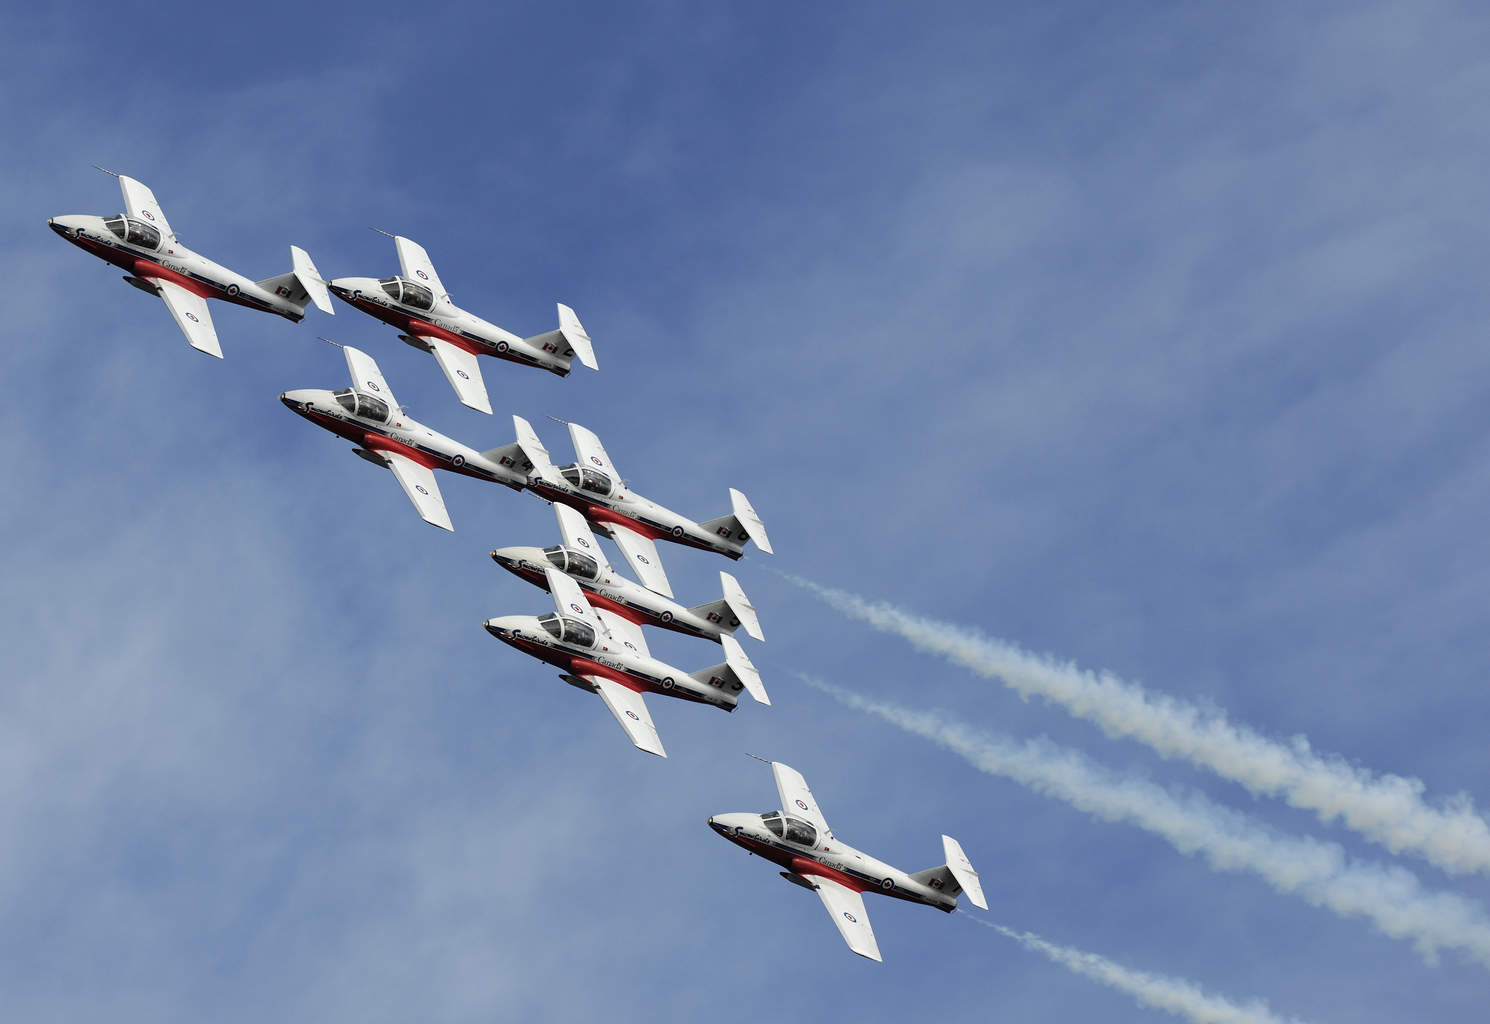 RCAF Snowbirds to fly until 2030 before being replaced